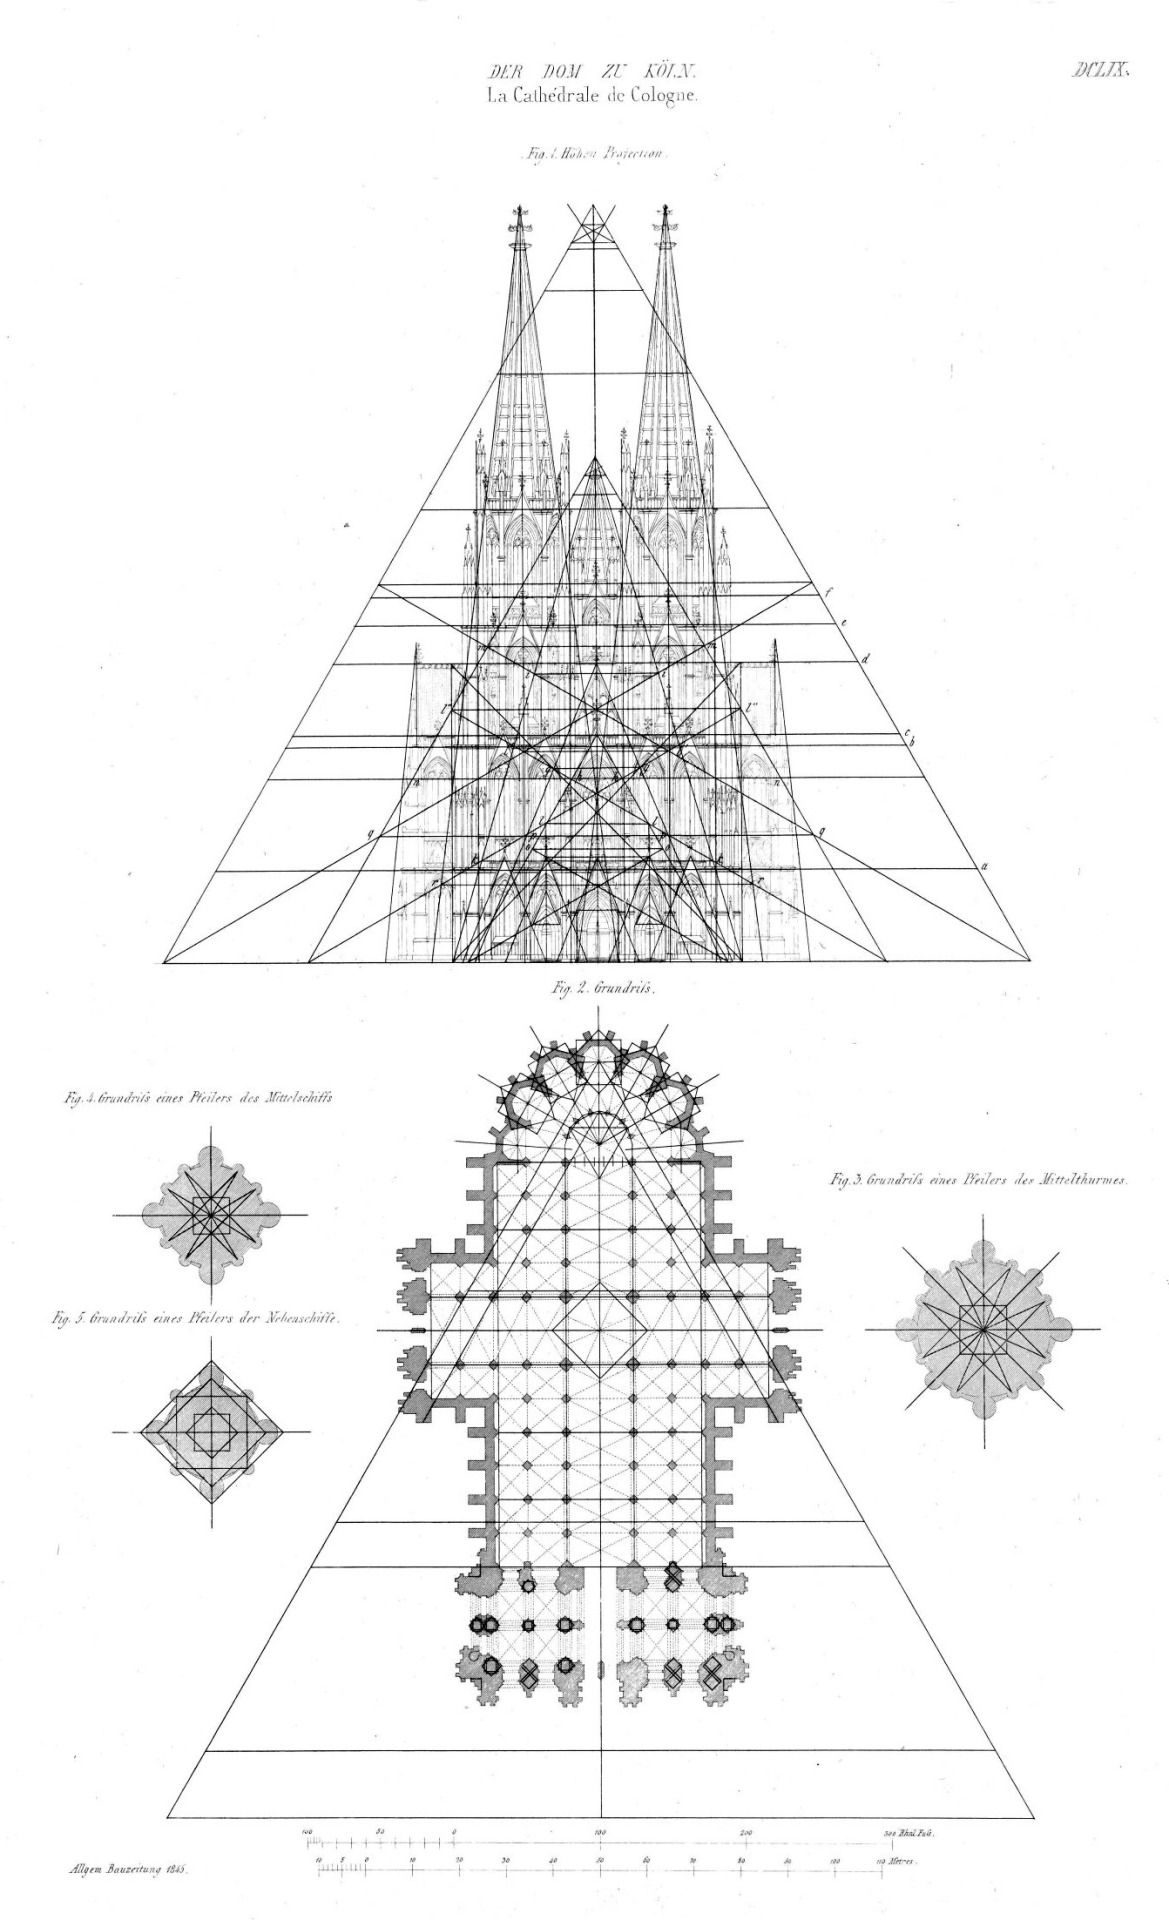 Elevation and plan of the cathedral cologne architecture archimaps gothic architecture drawingreligious architecturearchitecture blueprintsarchitecture malvernweather Images